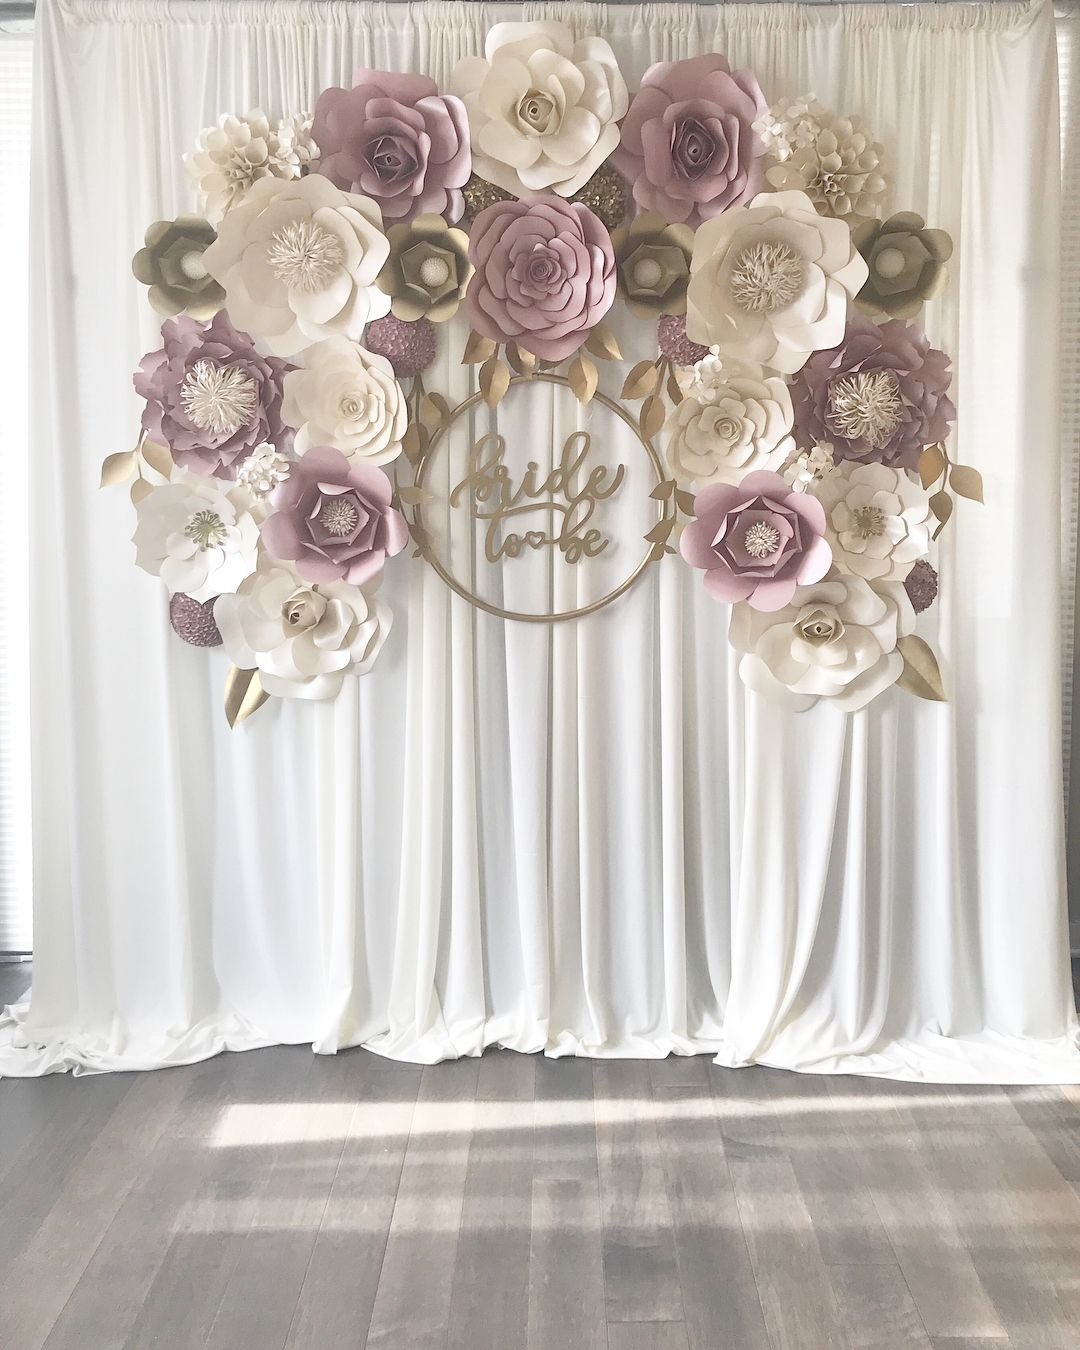 Paper Flowers For Weddings: Mauve/dusty Rose Paper Flower Backdrop. Engagement, Baby